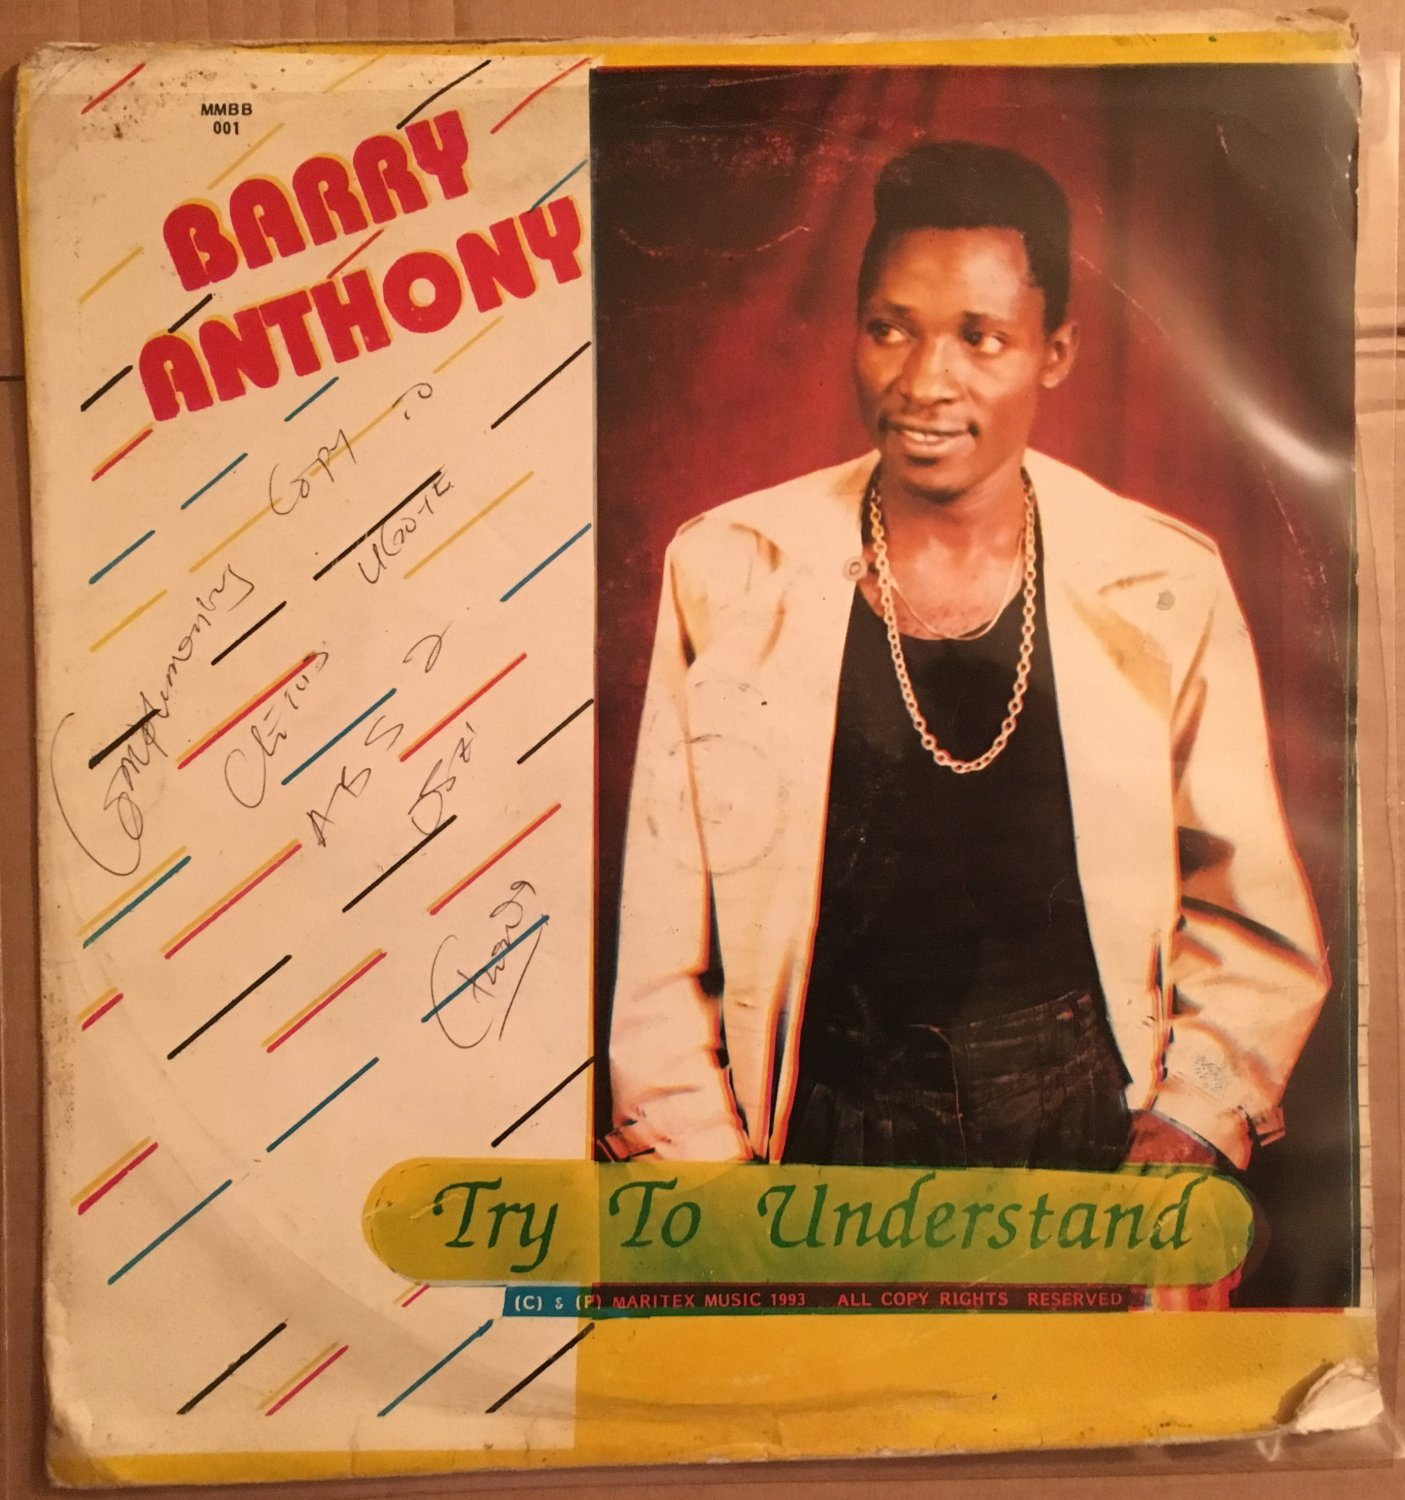 BARRY ANTHONY LP try to understand NIGERIA REGGAE SOCA POP mp3 LISTEN